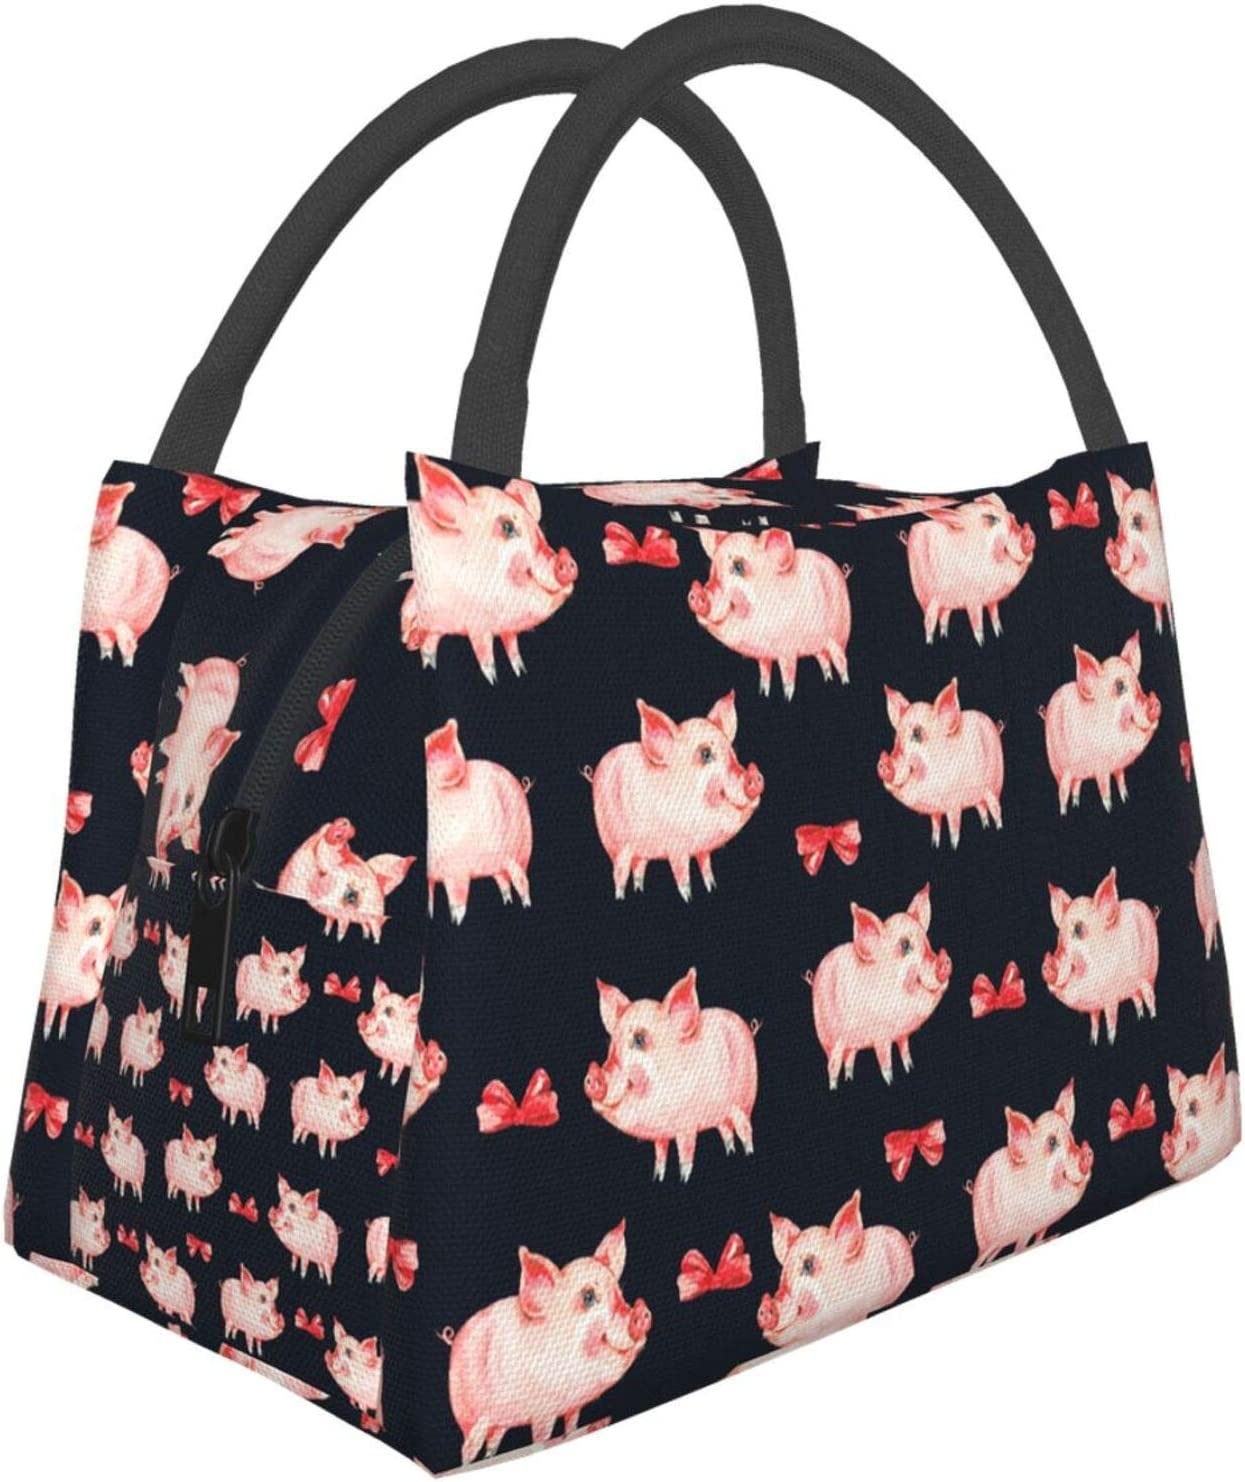 Pink Pig And Bow Lunch Bag Reusable Insulated Water-Resistant Thermal Soft Lunch Box For Work Picnic Office Outdoor